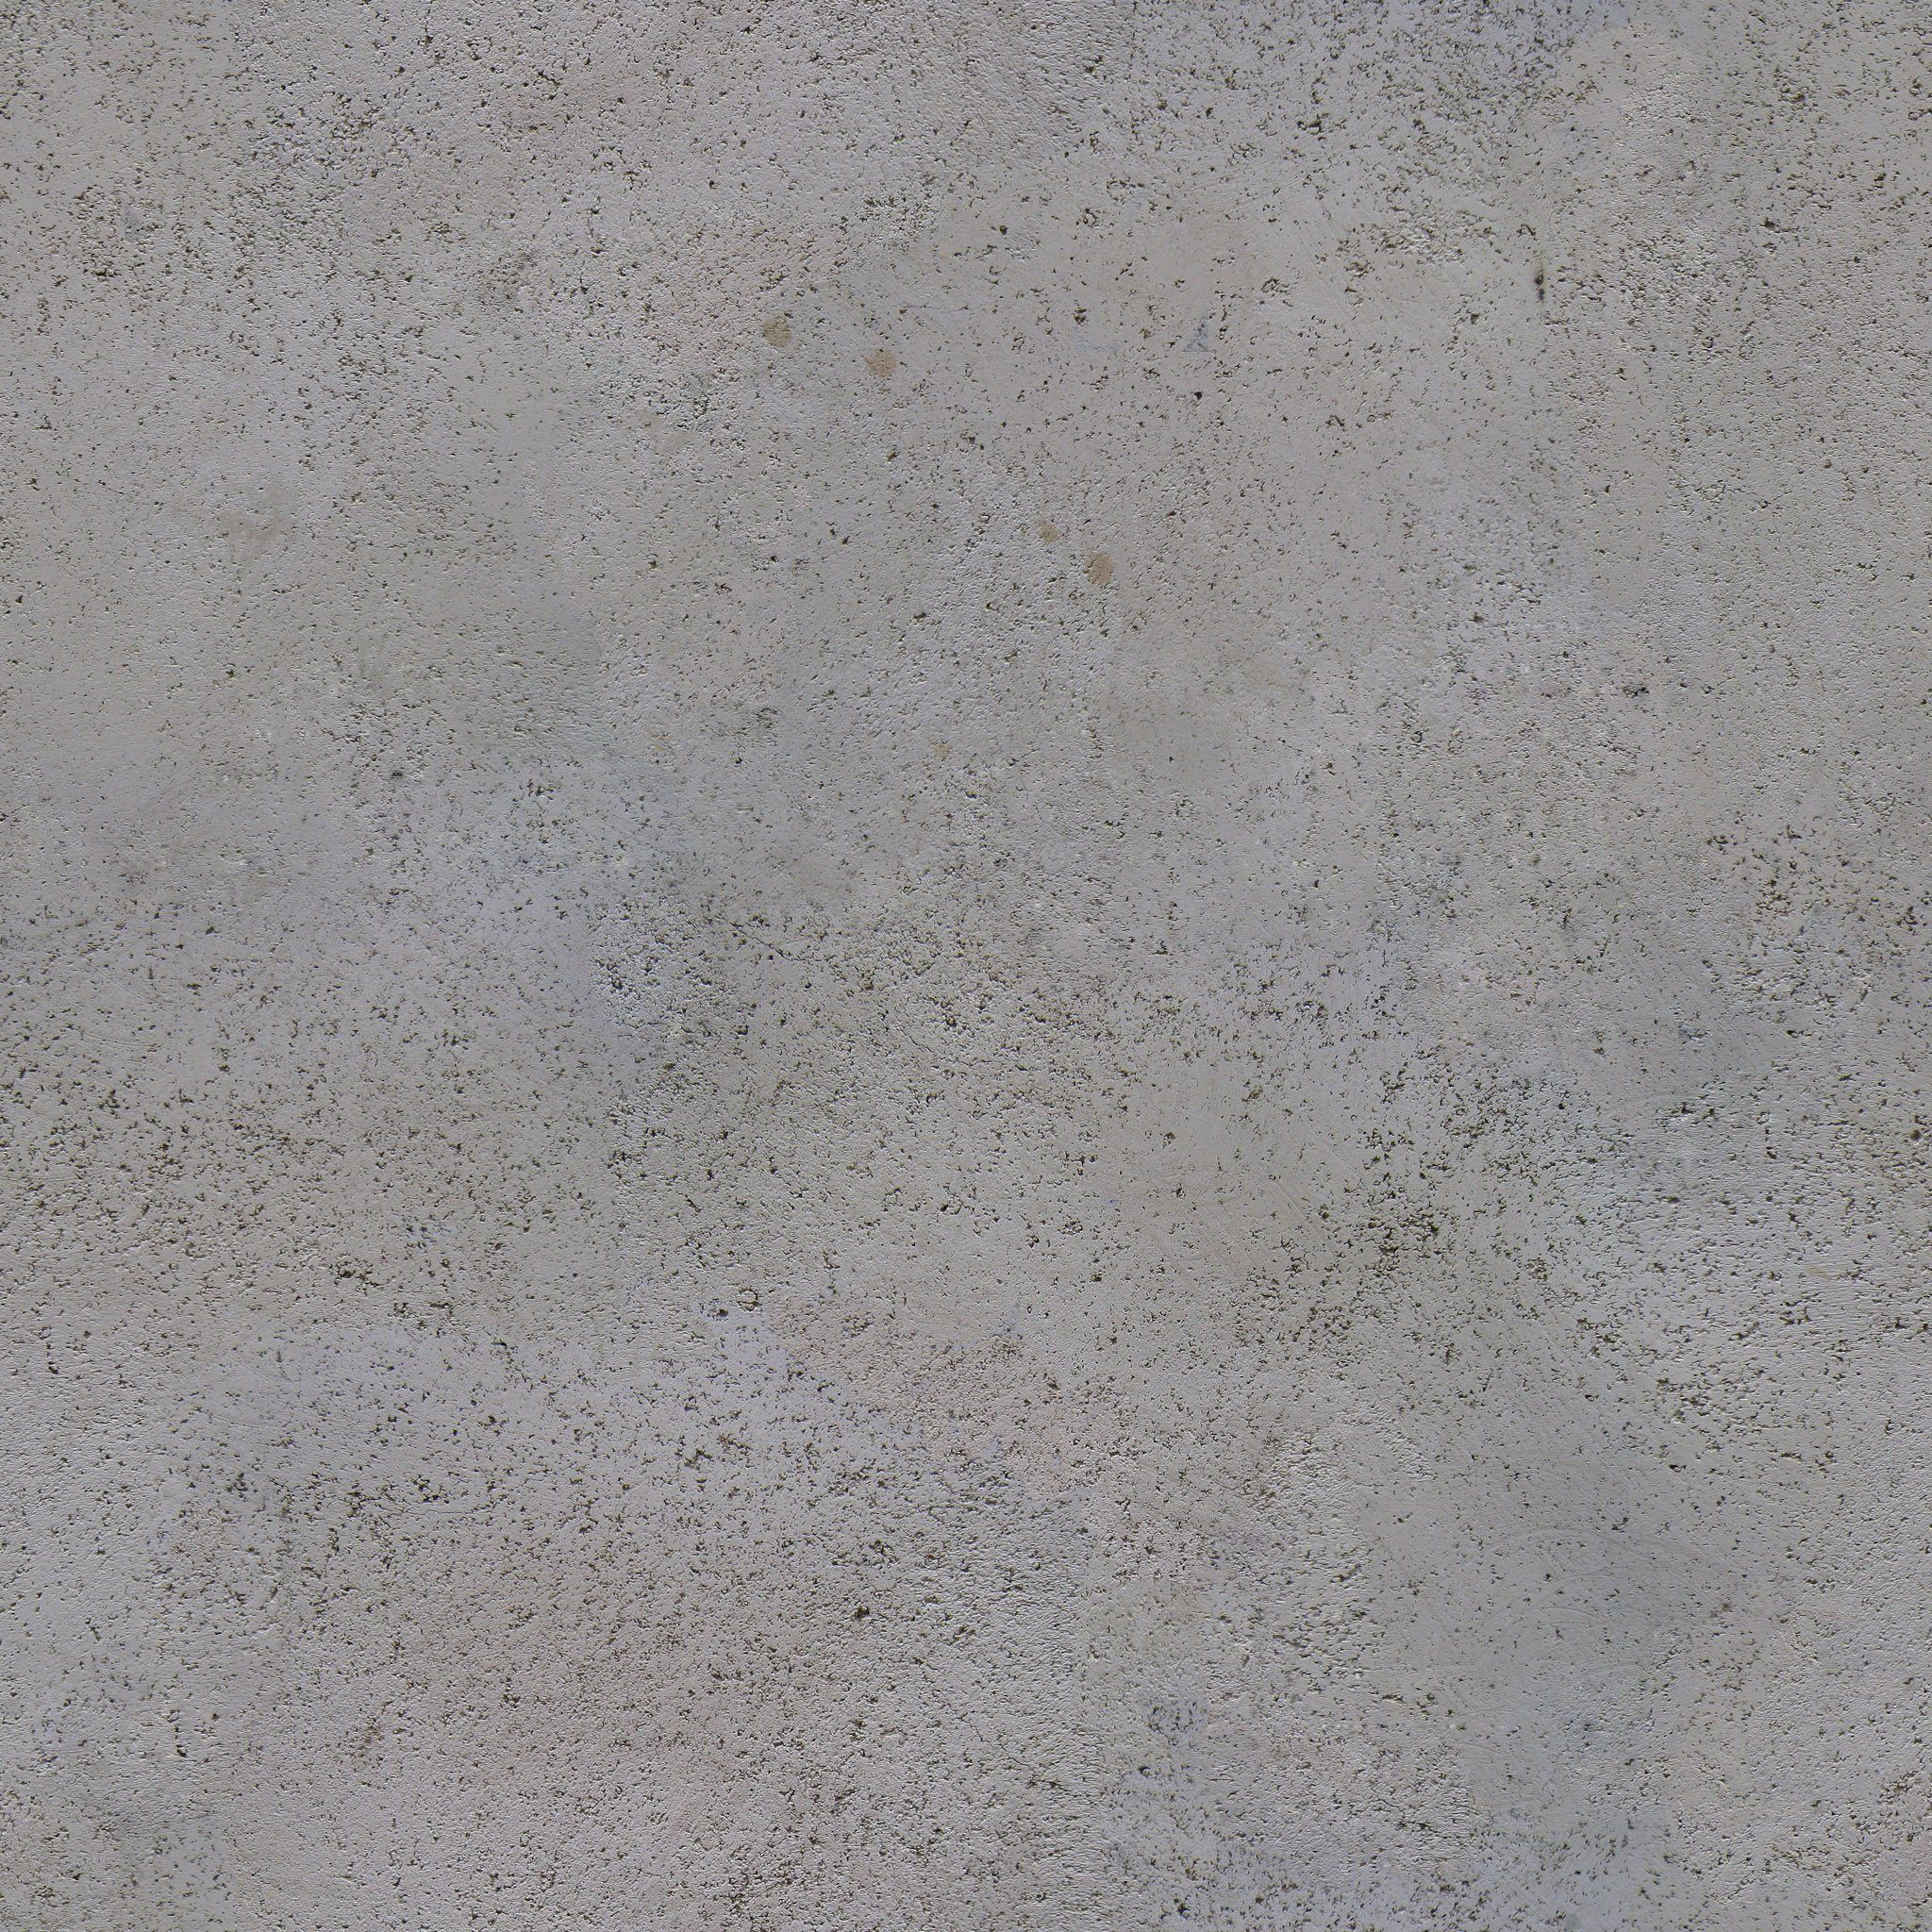 stained concrete floor texture. Beautiful Floor Smoothed_Concrete_Grey_Holed_Plaster_UV_CM_1jpg 20482048 Concrete  Floor TextureCement  Throughout Stained Texture A